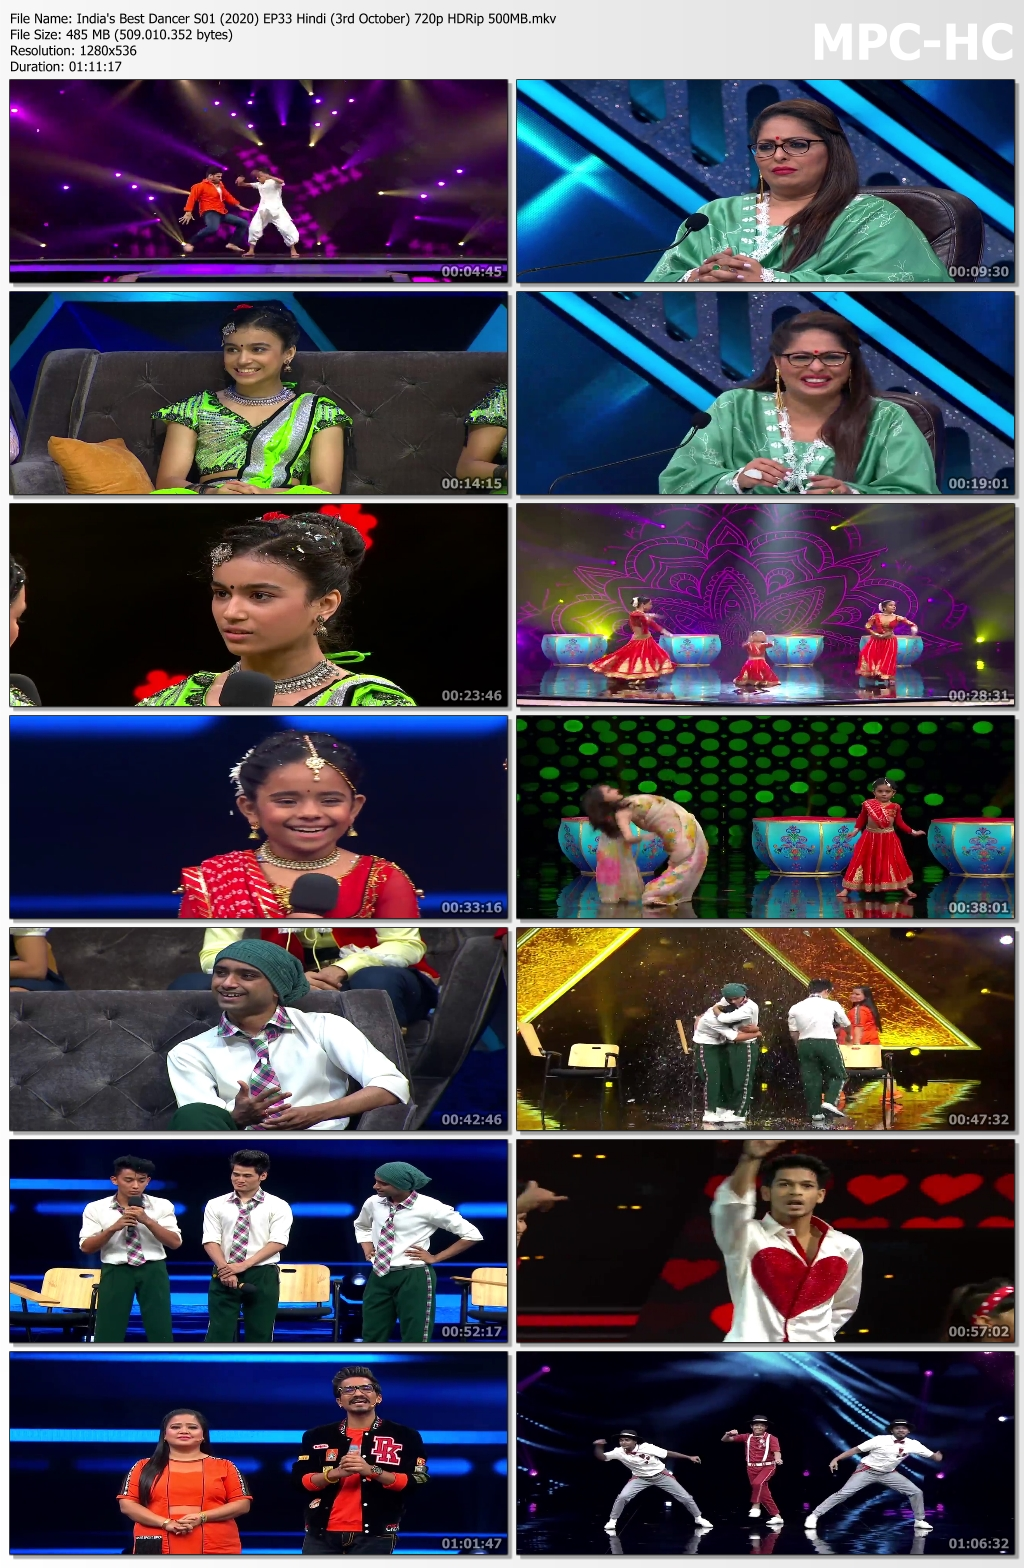 India-s-Best-Dancer-S01-2020-EP33-Hindi-3rd-October-720p-HDRip-500-MB-mkv-thumbs